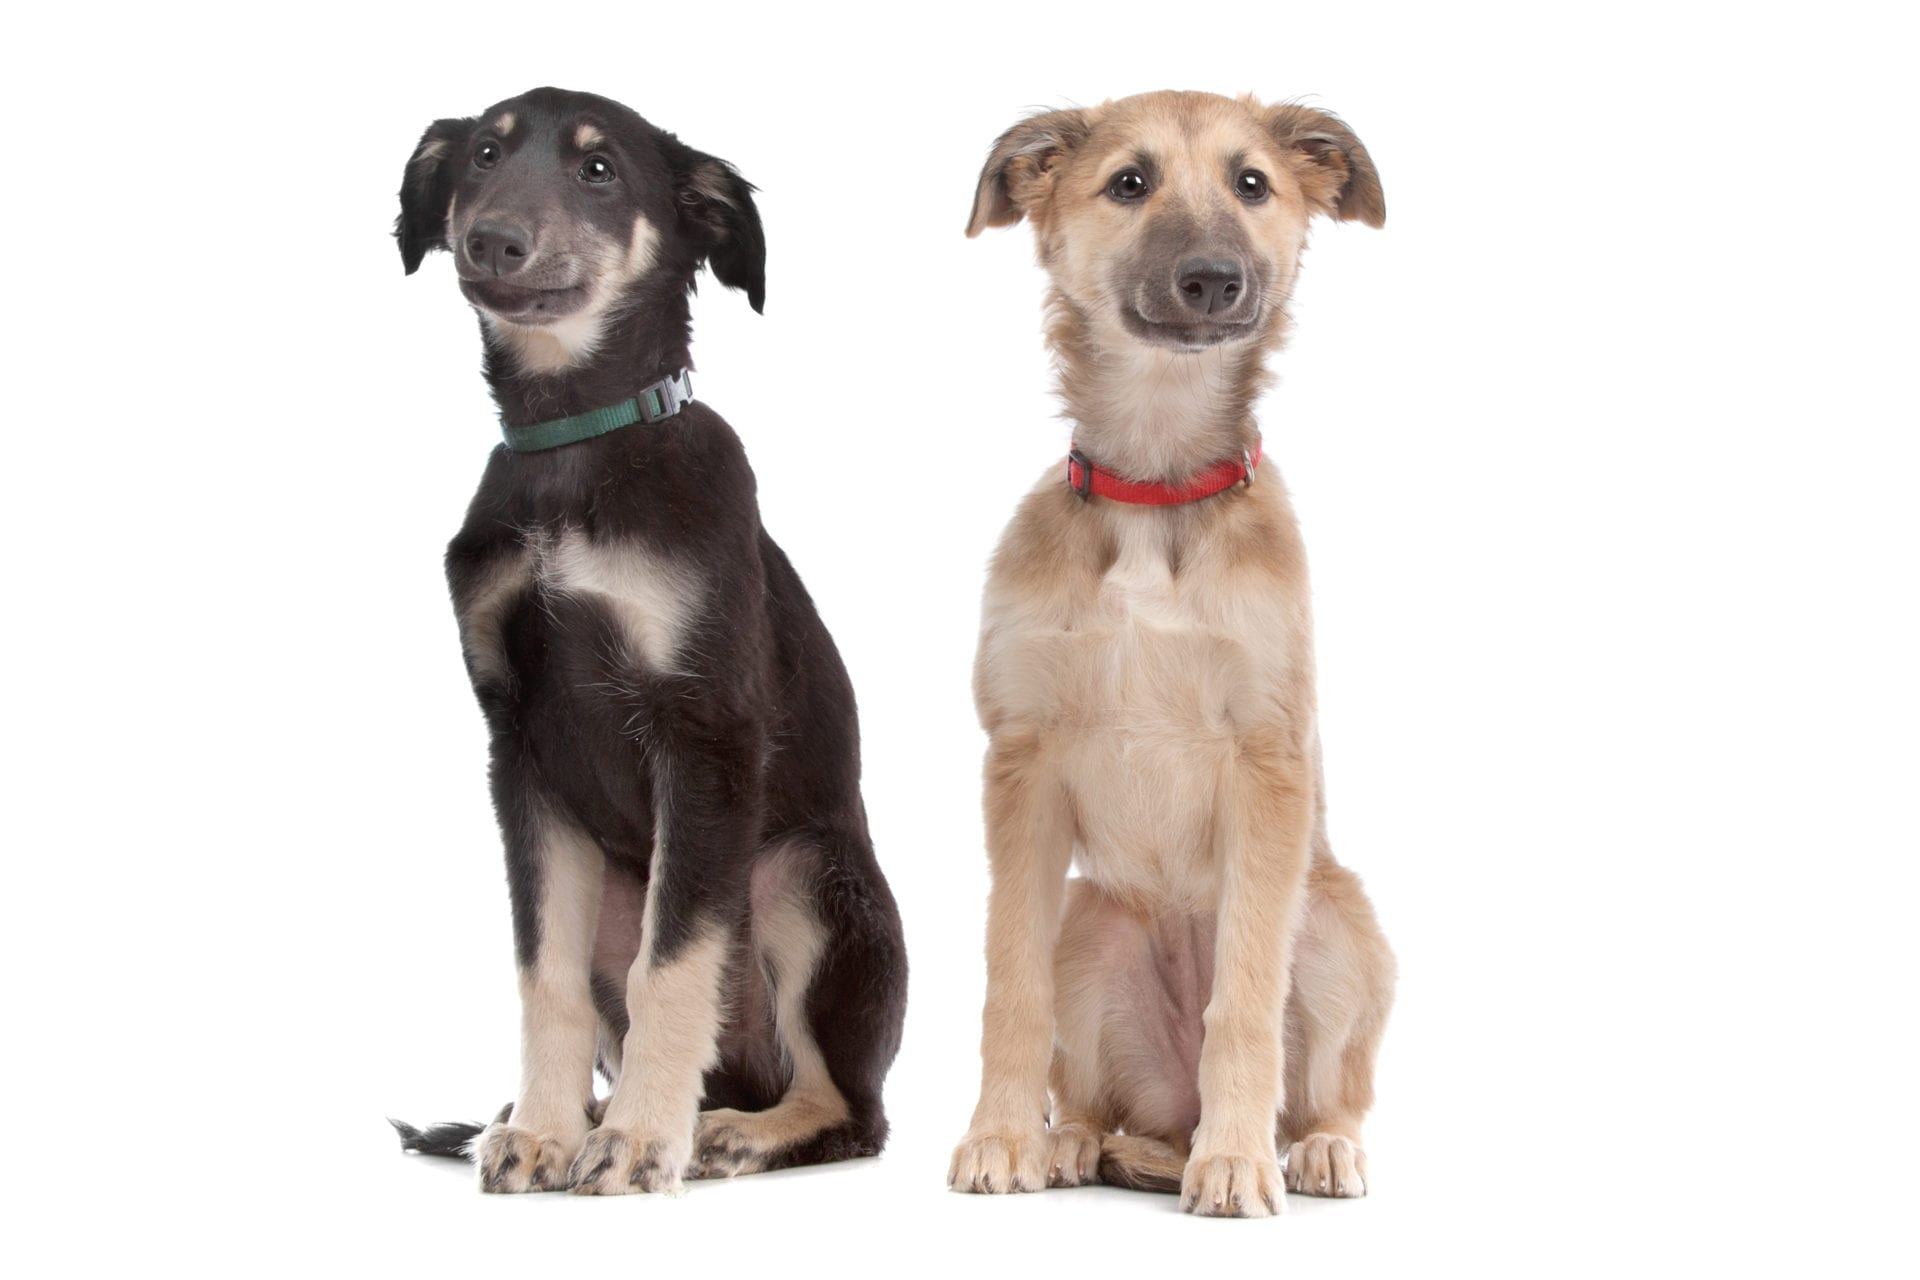 two whippet puppy dogs in front of a white background